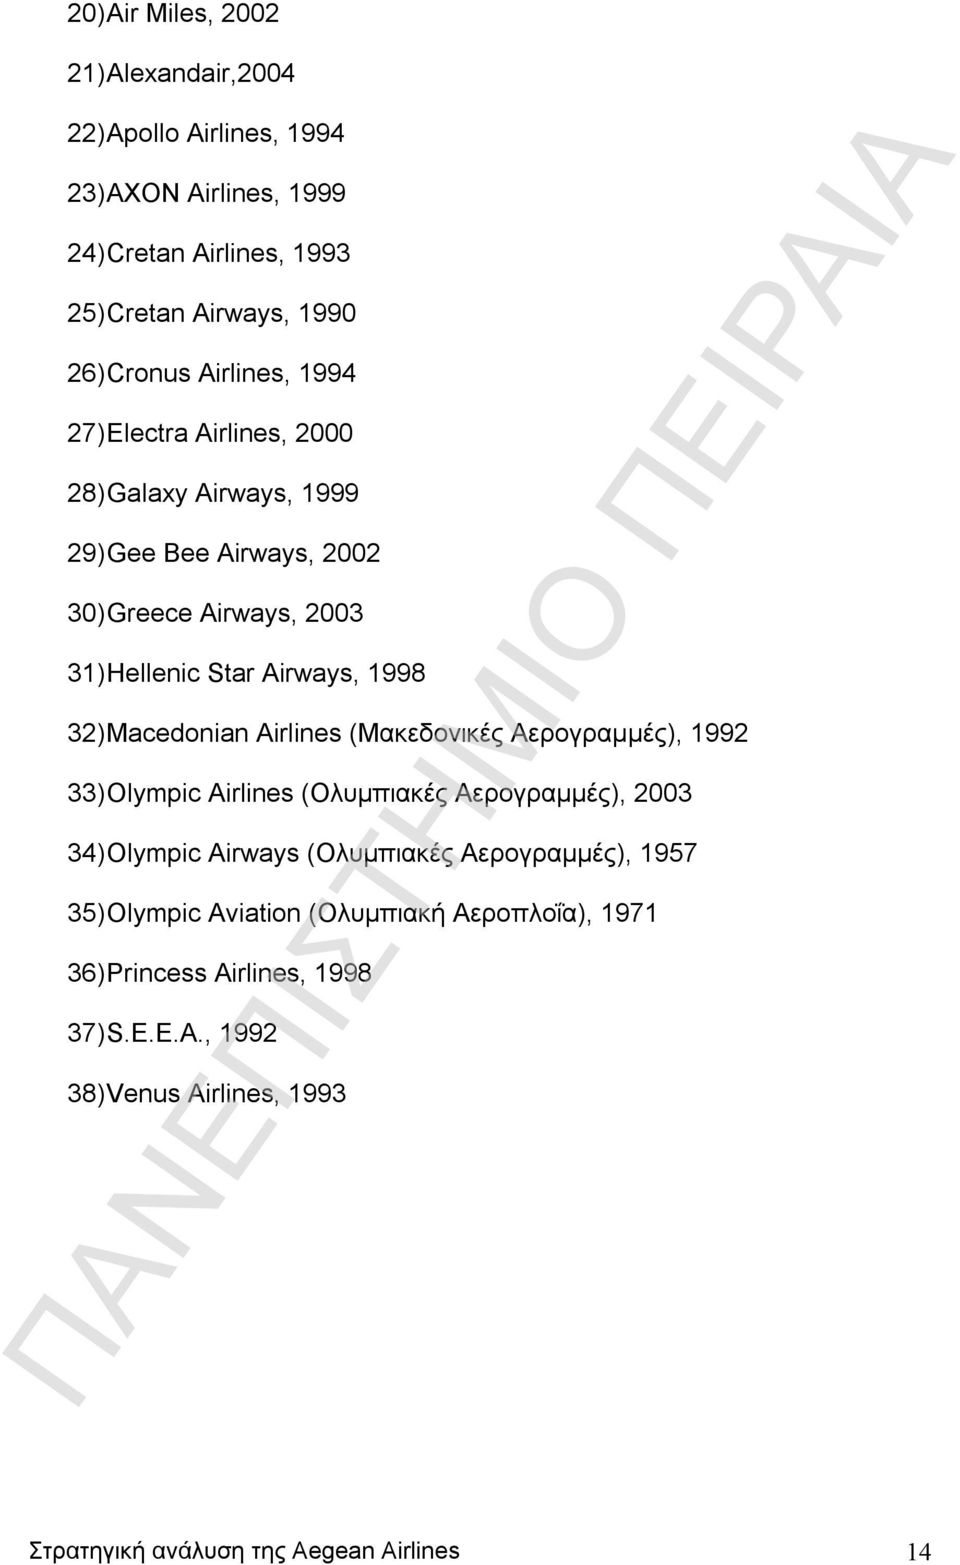 Macedonian Airlines (Μακεδονικές Αερογραμμές), 1992 33) Olympic Airlines (Ολυμπιακές Αερογραμμές), 2003 34) Olympic Airways (Ολυμπιακές Αερογραμμές), 1957